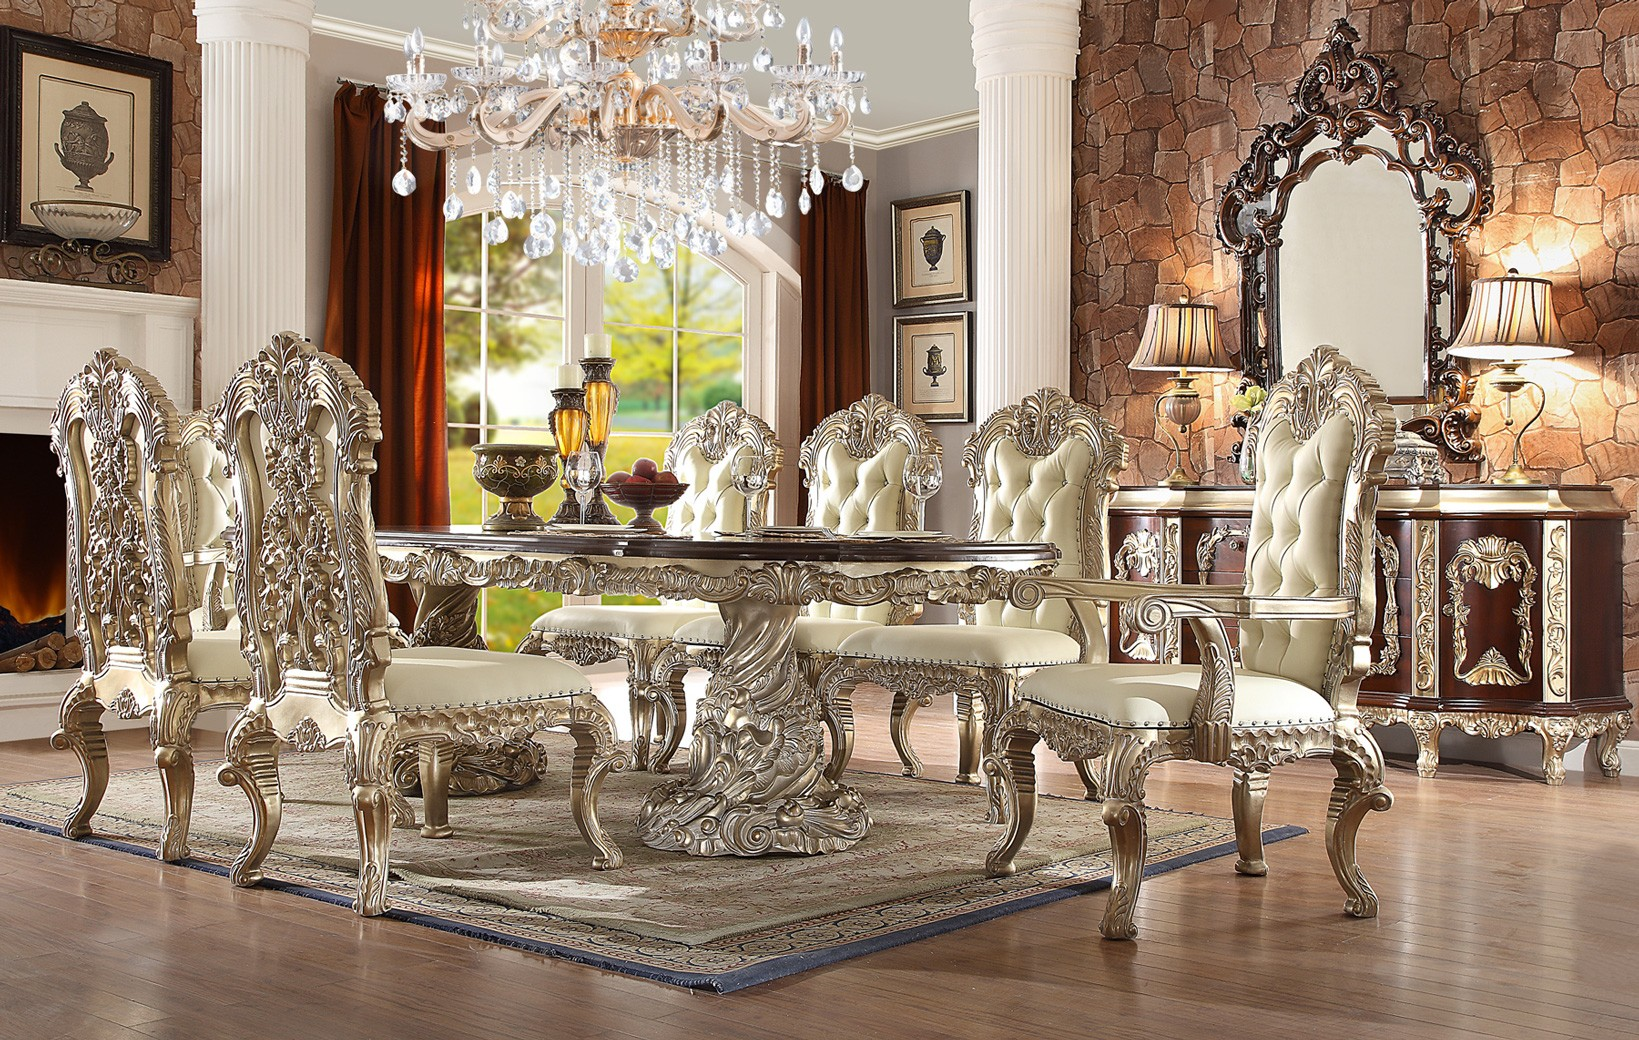 Hd 8017 Antique White Finish Dining Set Rectangular Table Homey Design Victorian European Clic